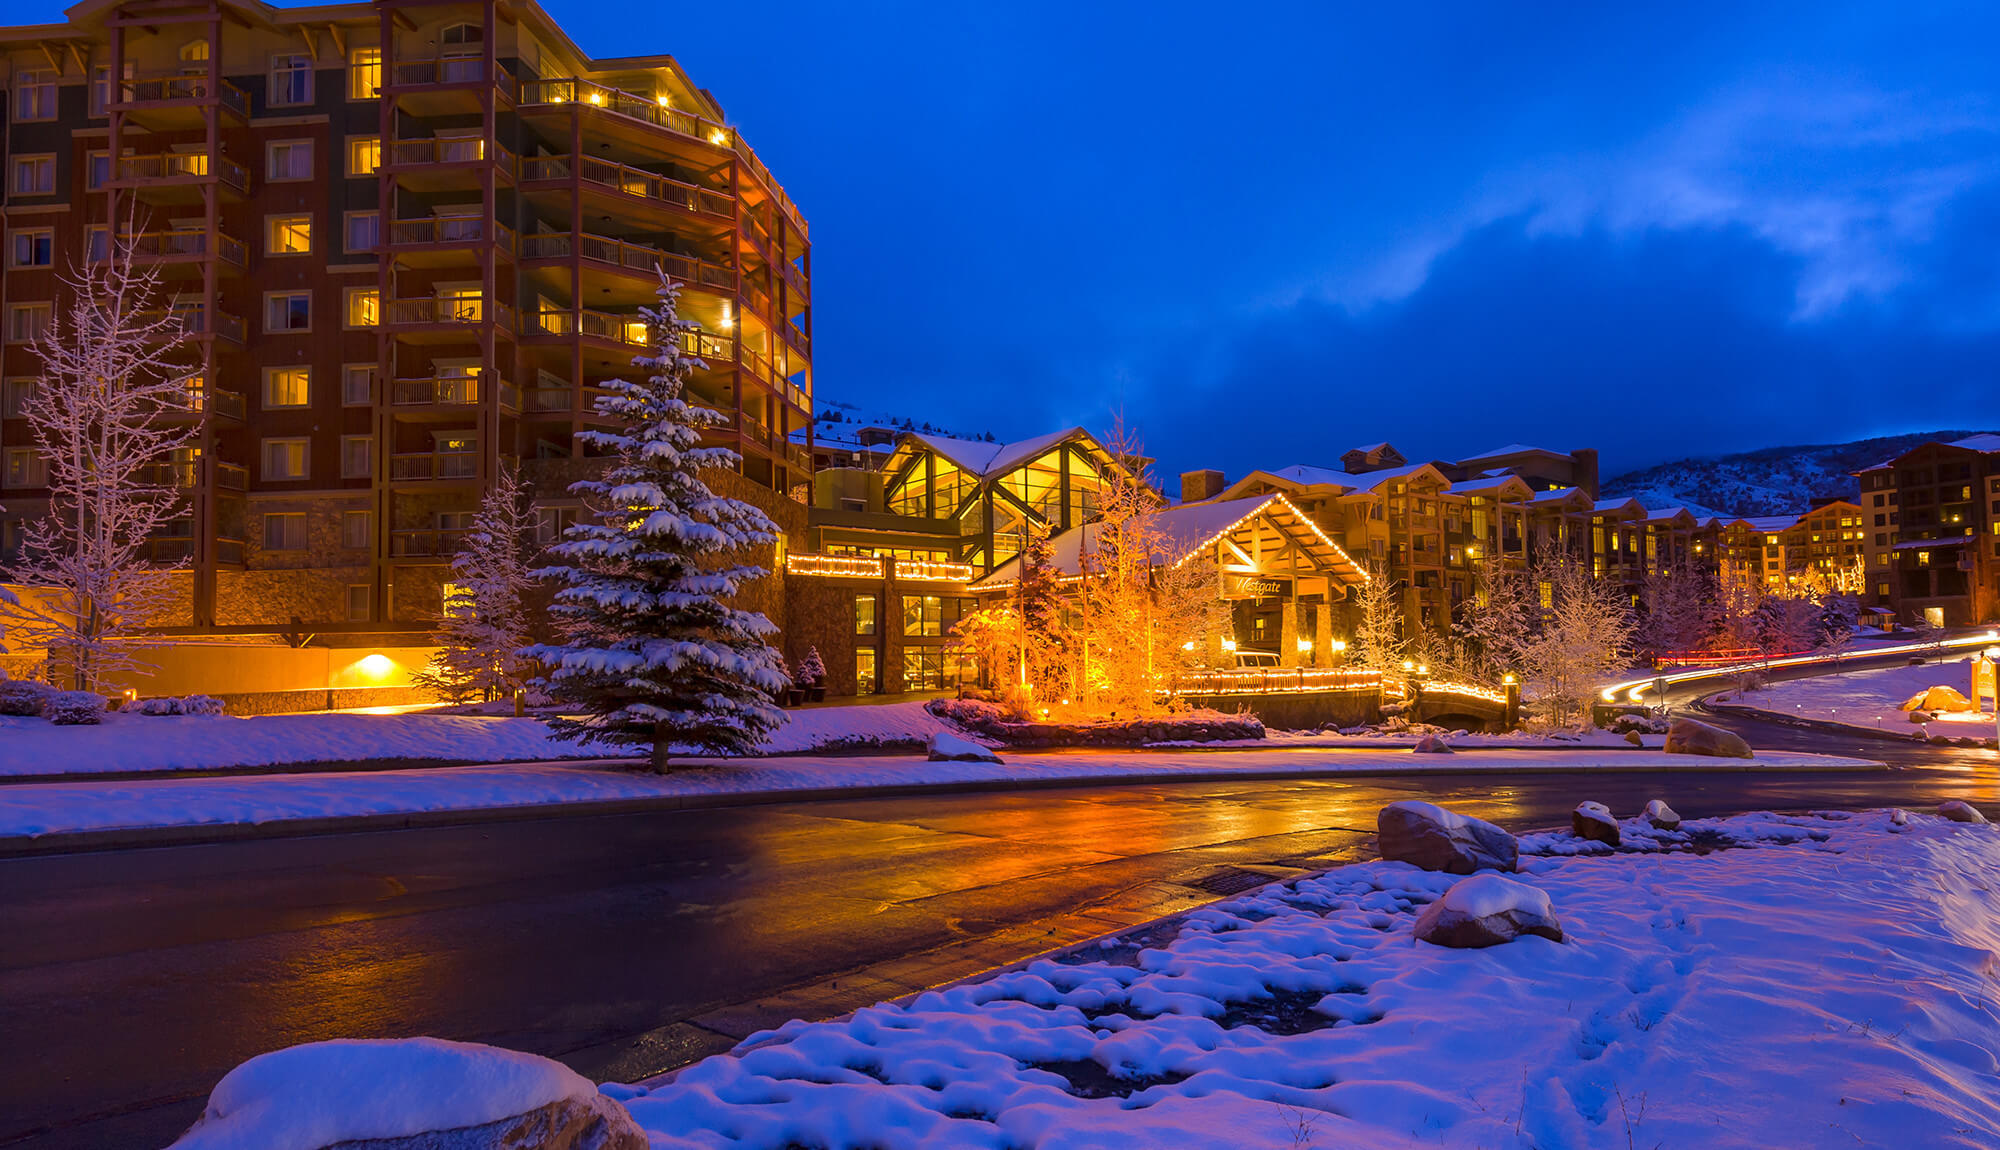 Wintry scene in front of main entrance to Park City resort | Westgate Park City Resort & Spa